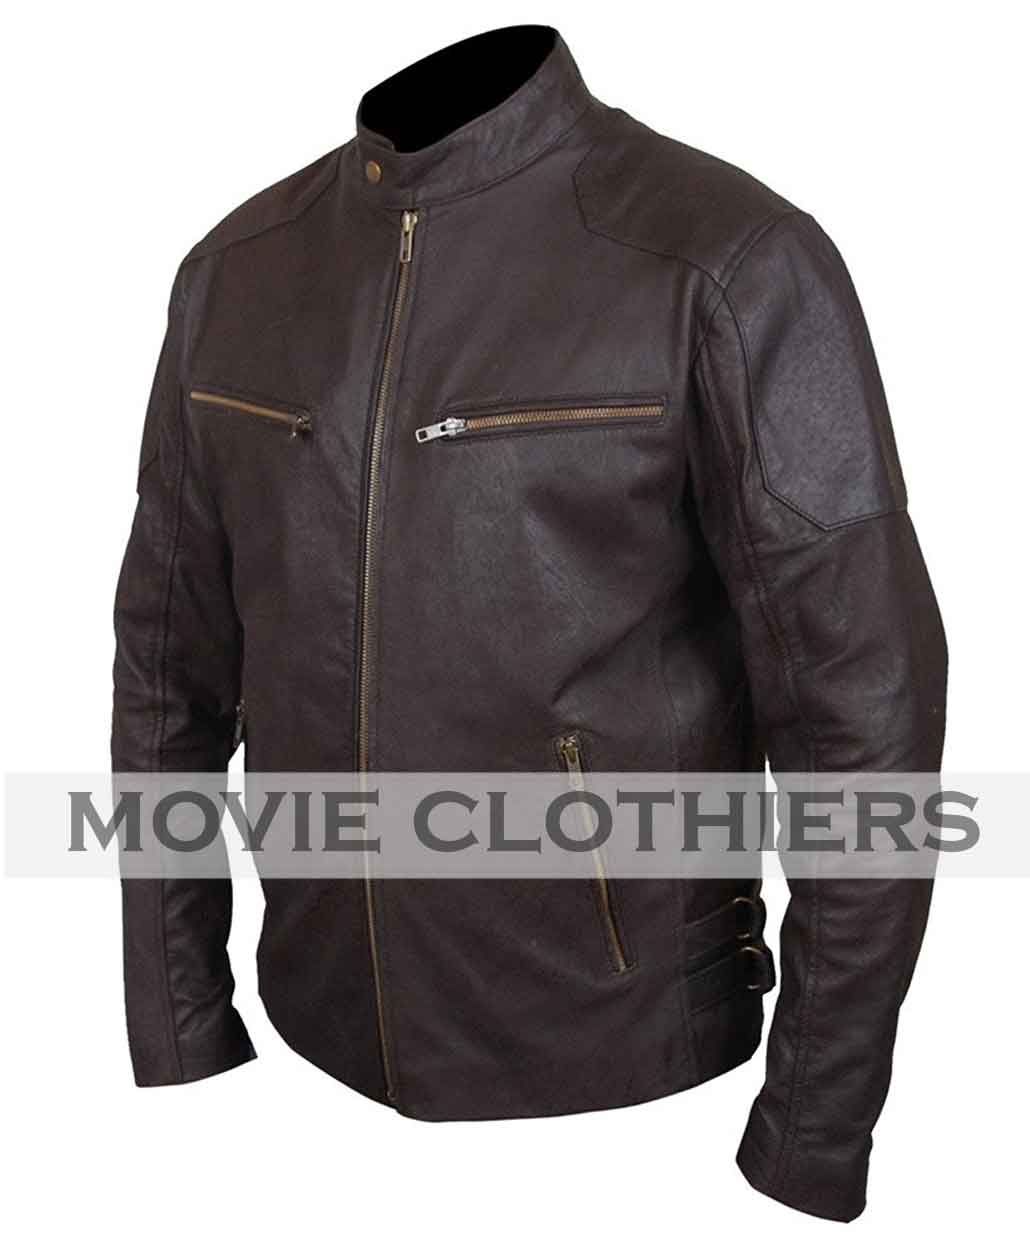 chris evans jacket civil war